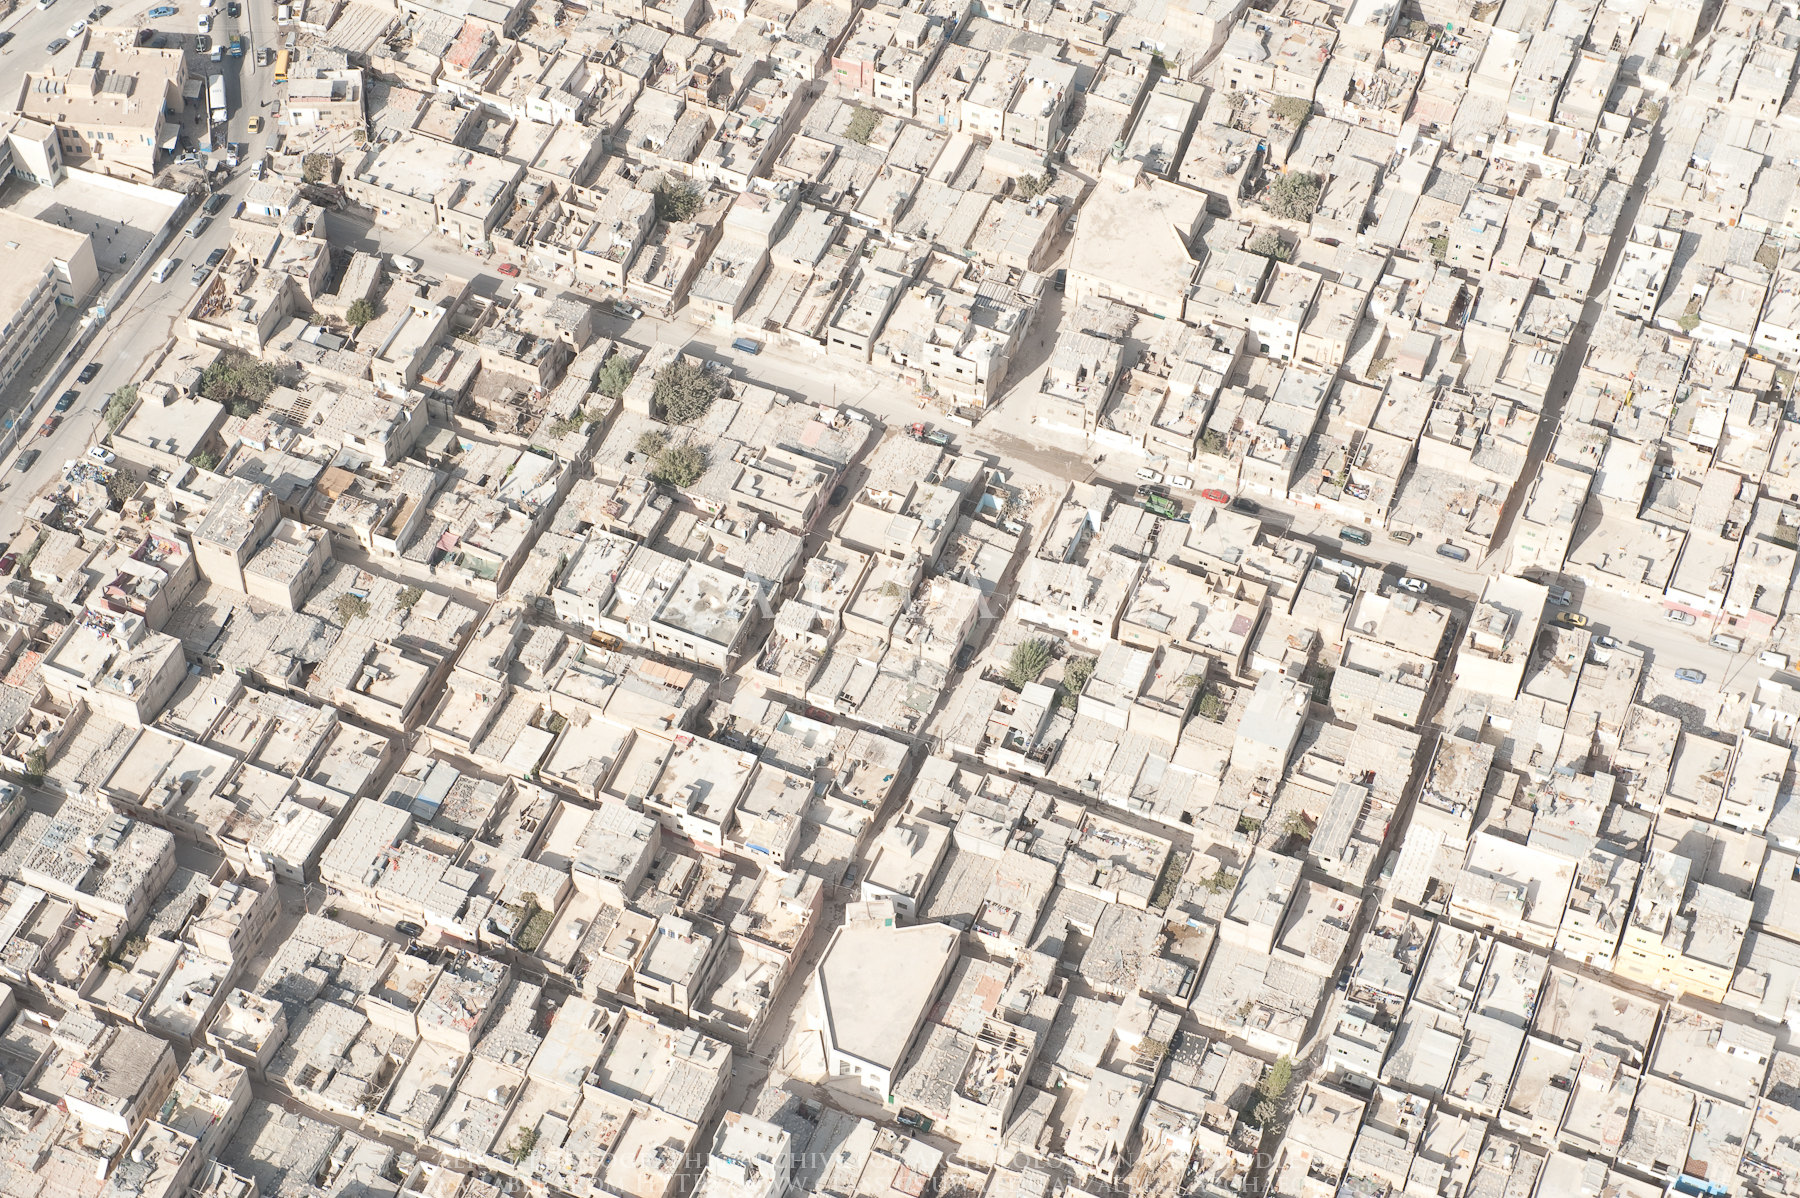 Crowded conditions in refugee camps can overburden support services and infrastructure, alongside all the problems caused by household crowding.   Aerial Photographic Archives for Archaeology in the Middle East/Flickr  (CC BY-NC-ND 2.0)